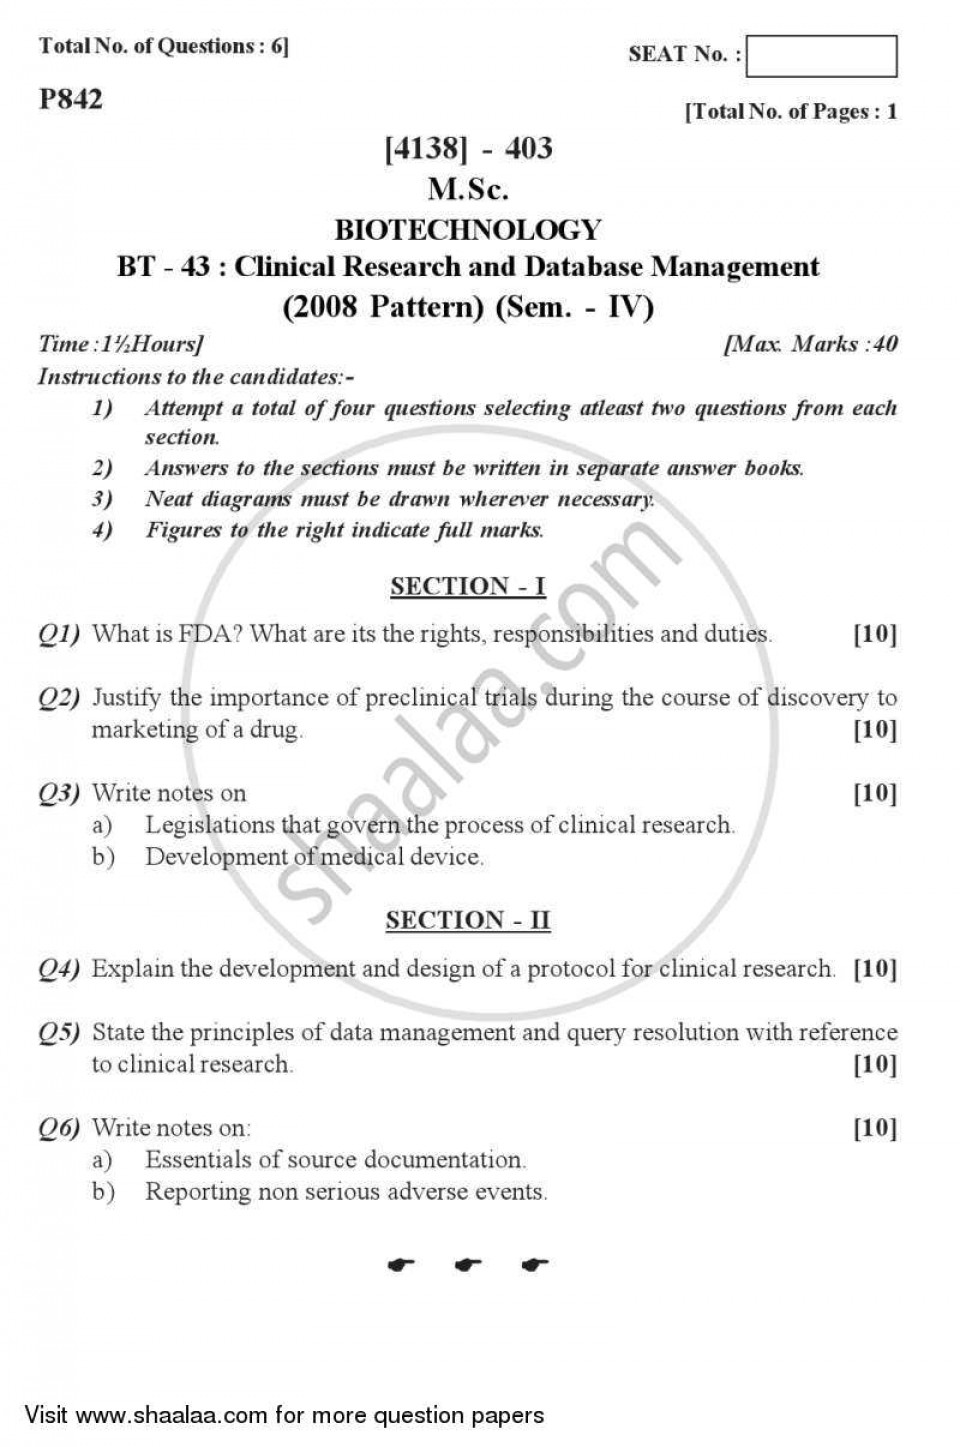 020 University Of Pune Master Msc Clinical Research Database Management Biotech Semester 2012 25b9c0e3f87cb432992c22355b1608732 Phenomenal Paper Security Design Topics Ieee 960